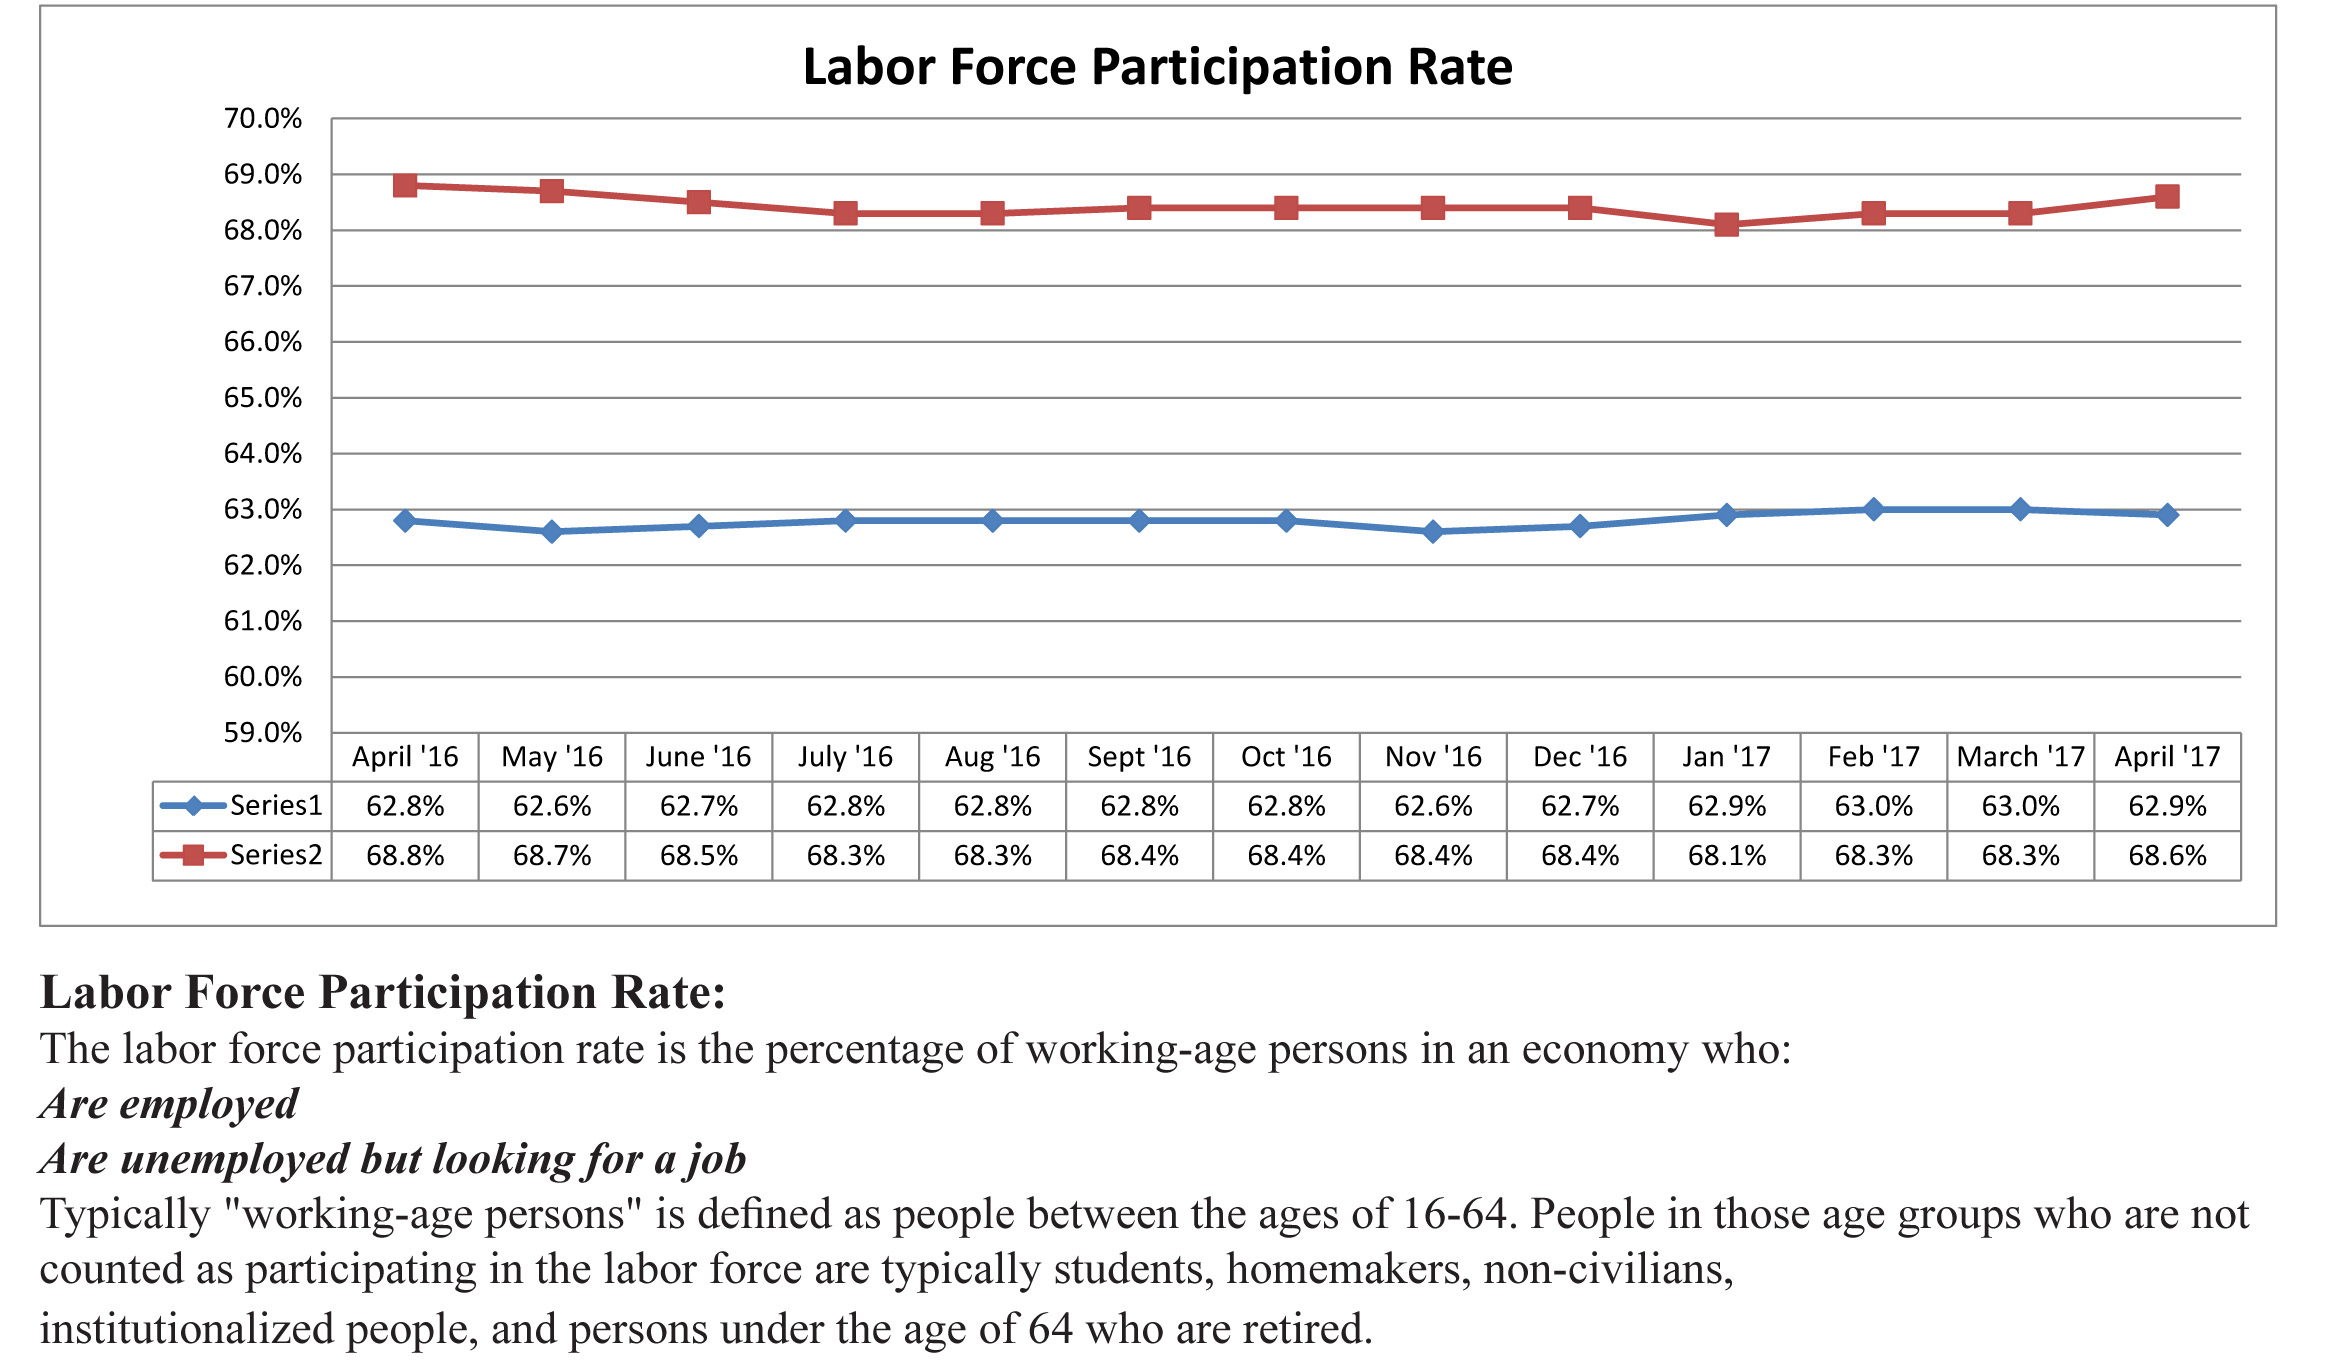 April 2017 Participation Rate